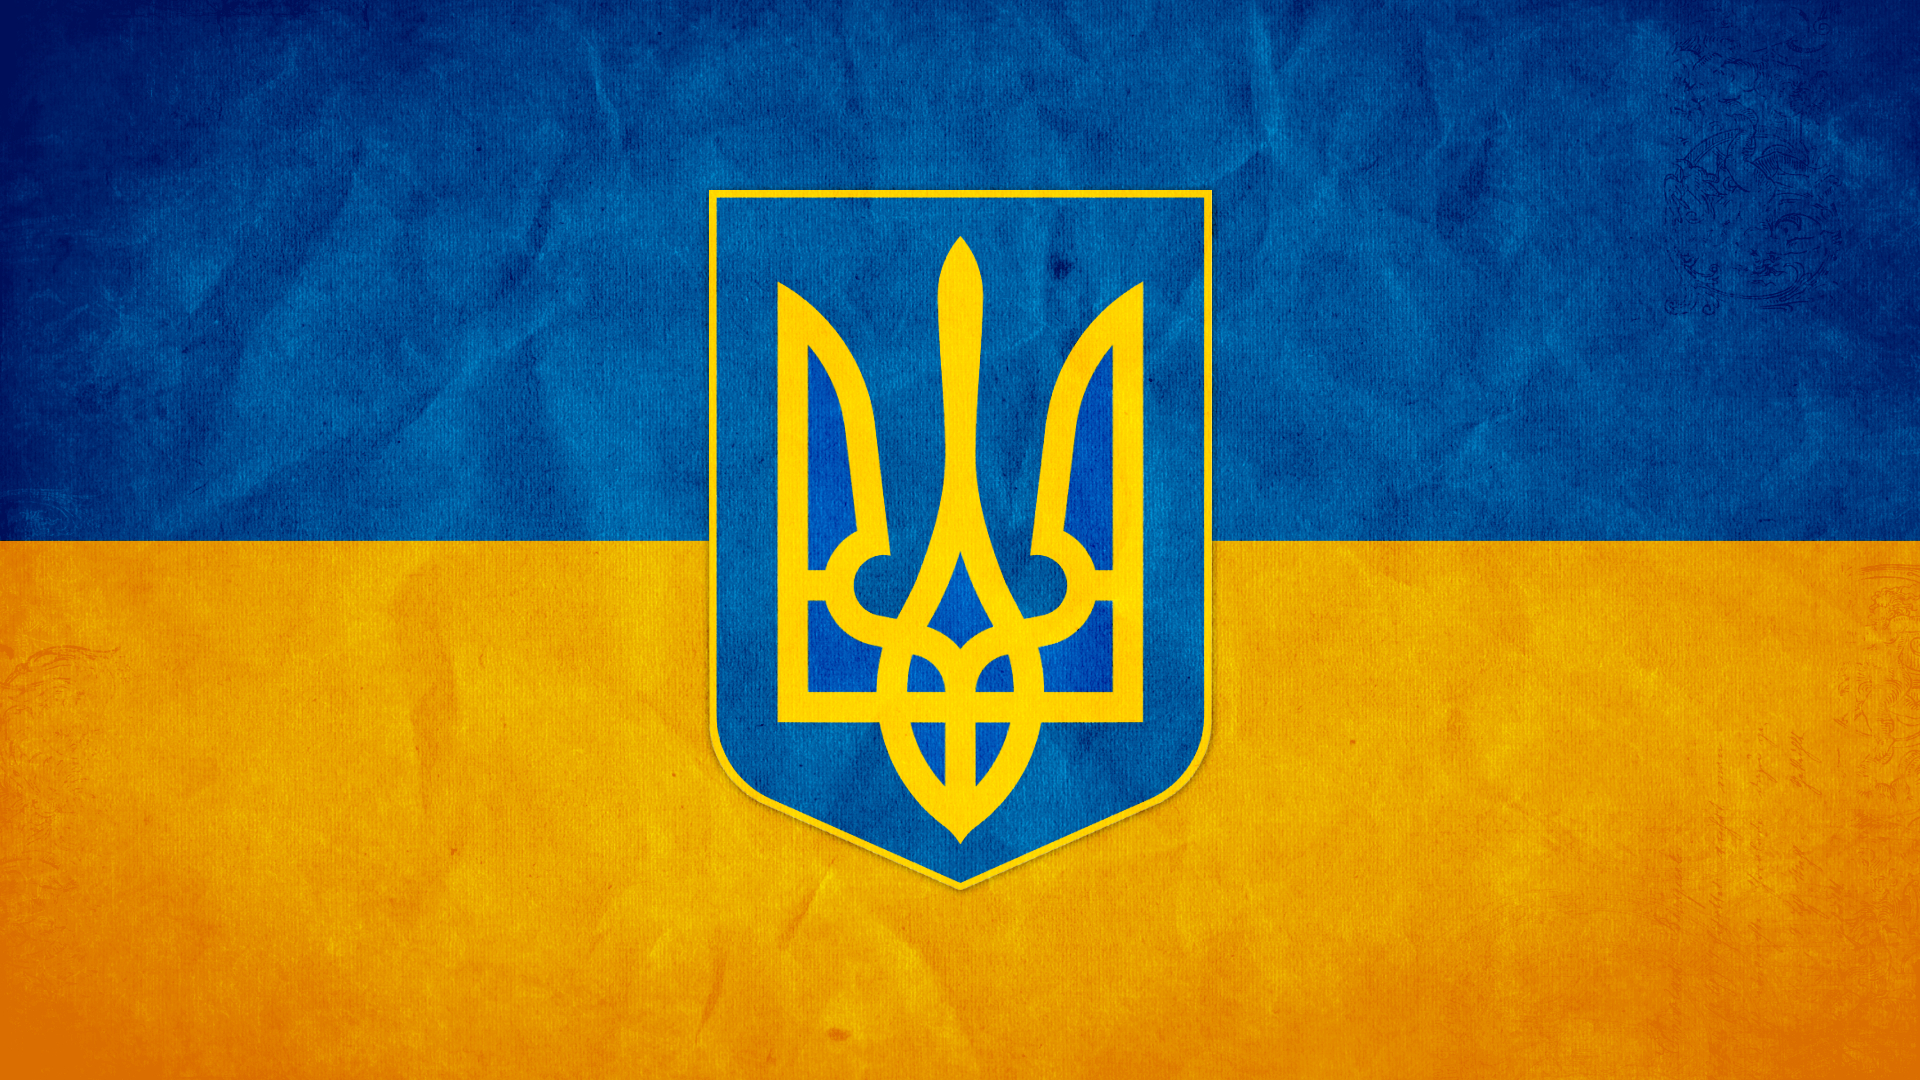 http://static.tumblr.com/c26ffcc54c5b8813c9bb7497fdf4f3b6/1rztmqm/4uHmg4598/tumblr_static_ukraine_grunge_flag_with_coat_of_arms_by_syndikata_np-d5lr2rn.jpg